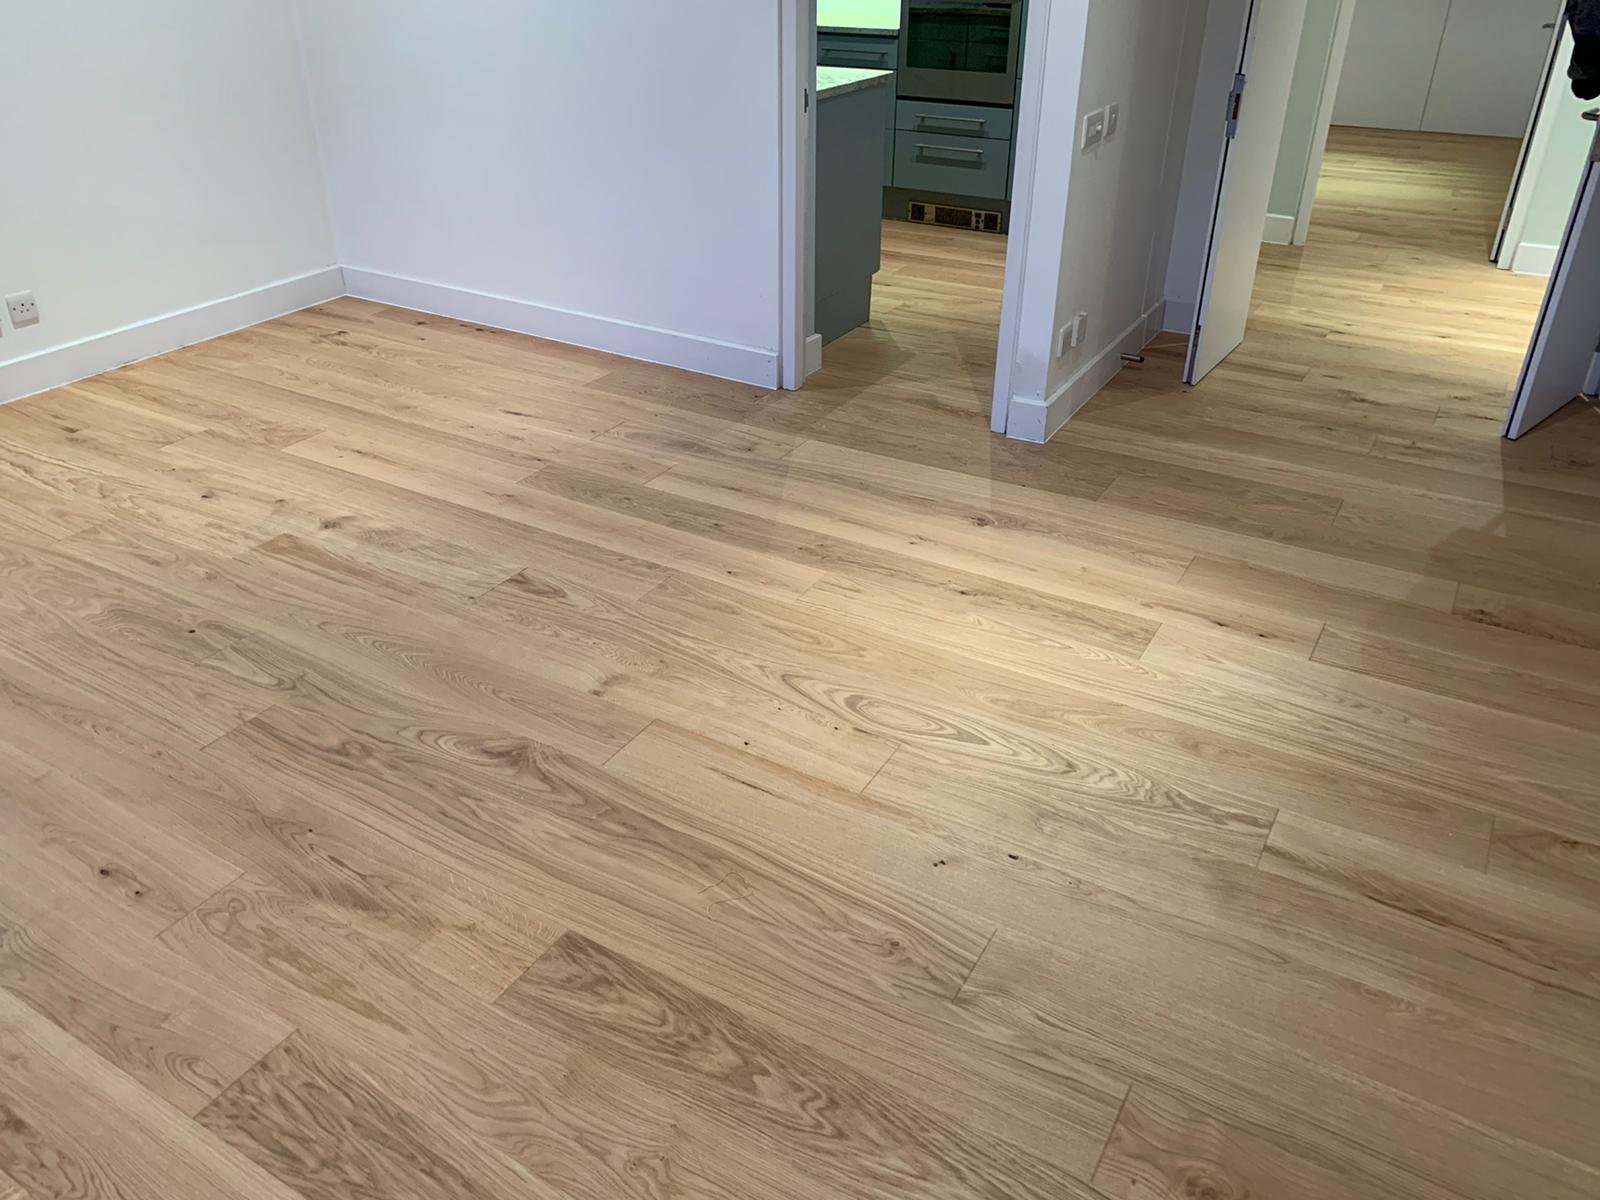 Kersaint Cobb hardwood flooring in Barnes 6